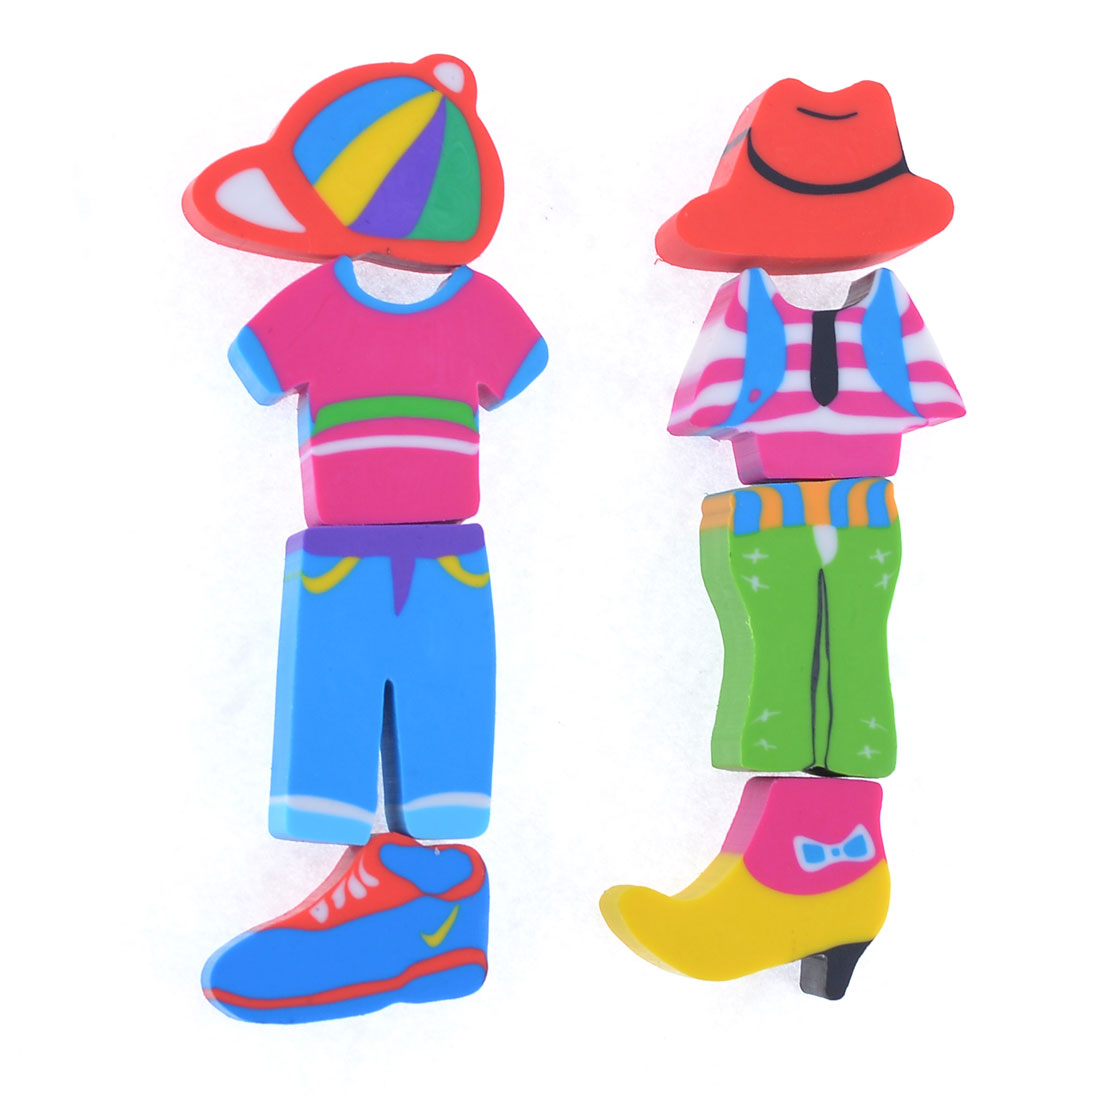 2 Sets Child Colorful Clothing Hat Shaped Rubber Eraser Stationery Gift